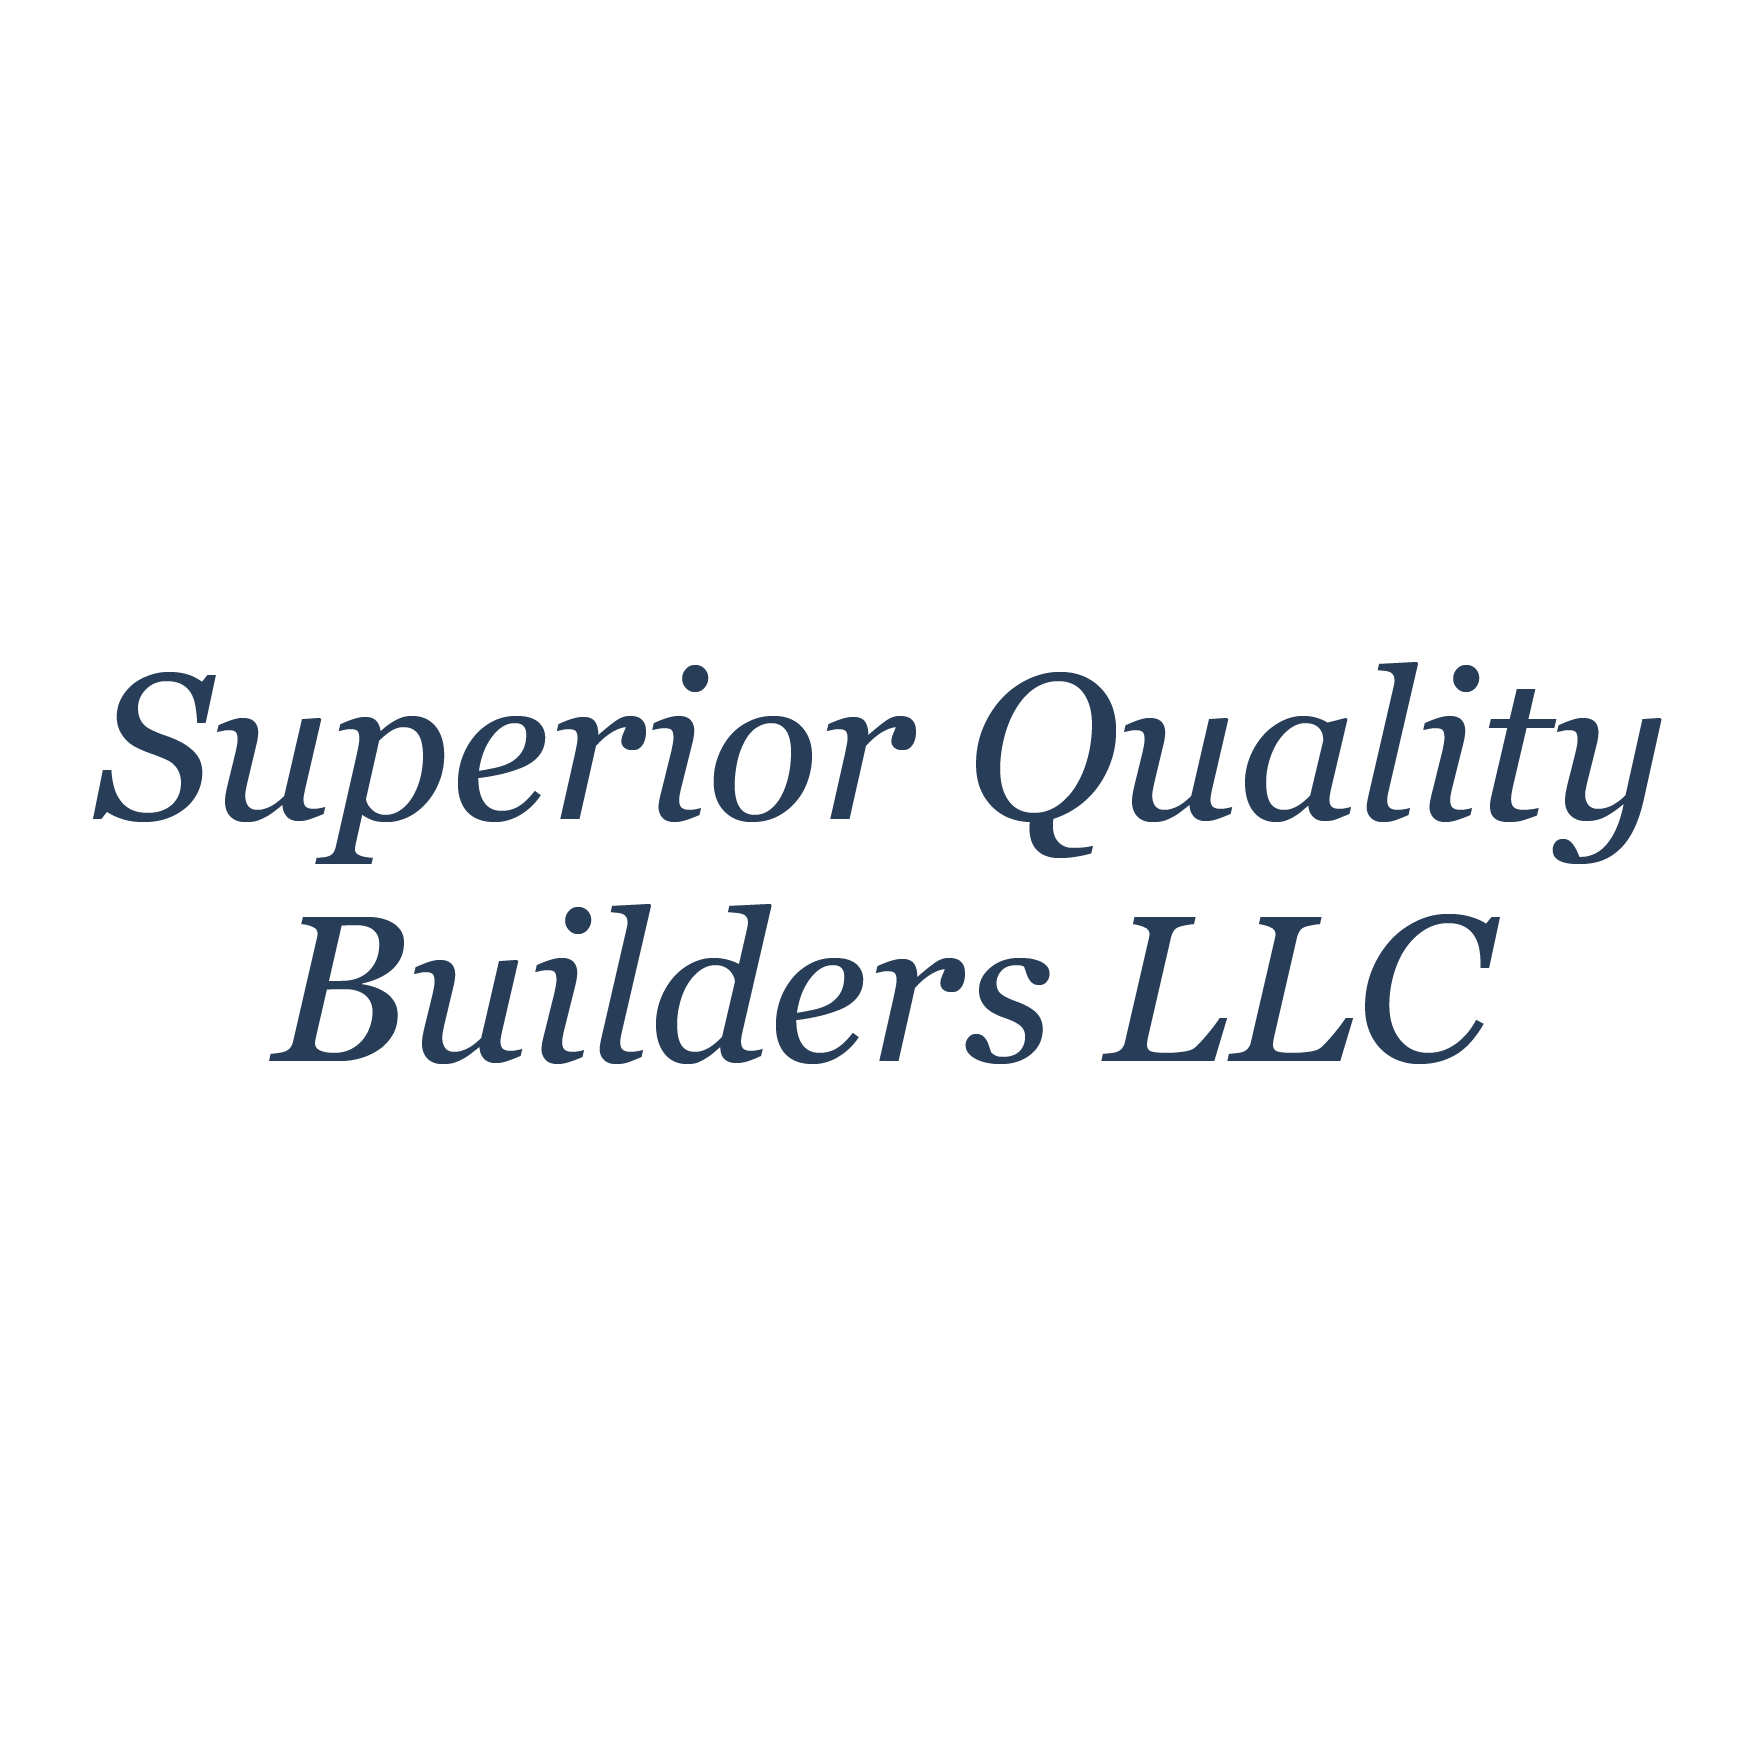 Superior Quality Builders LLC